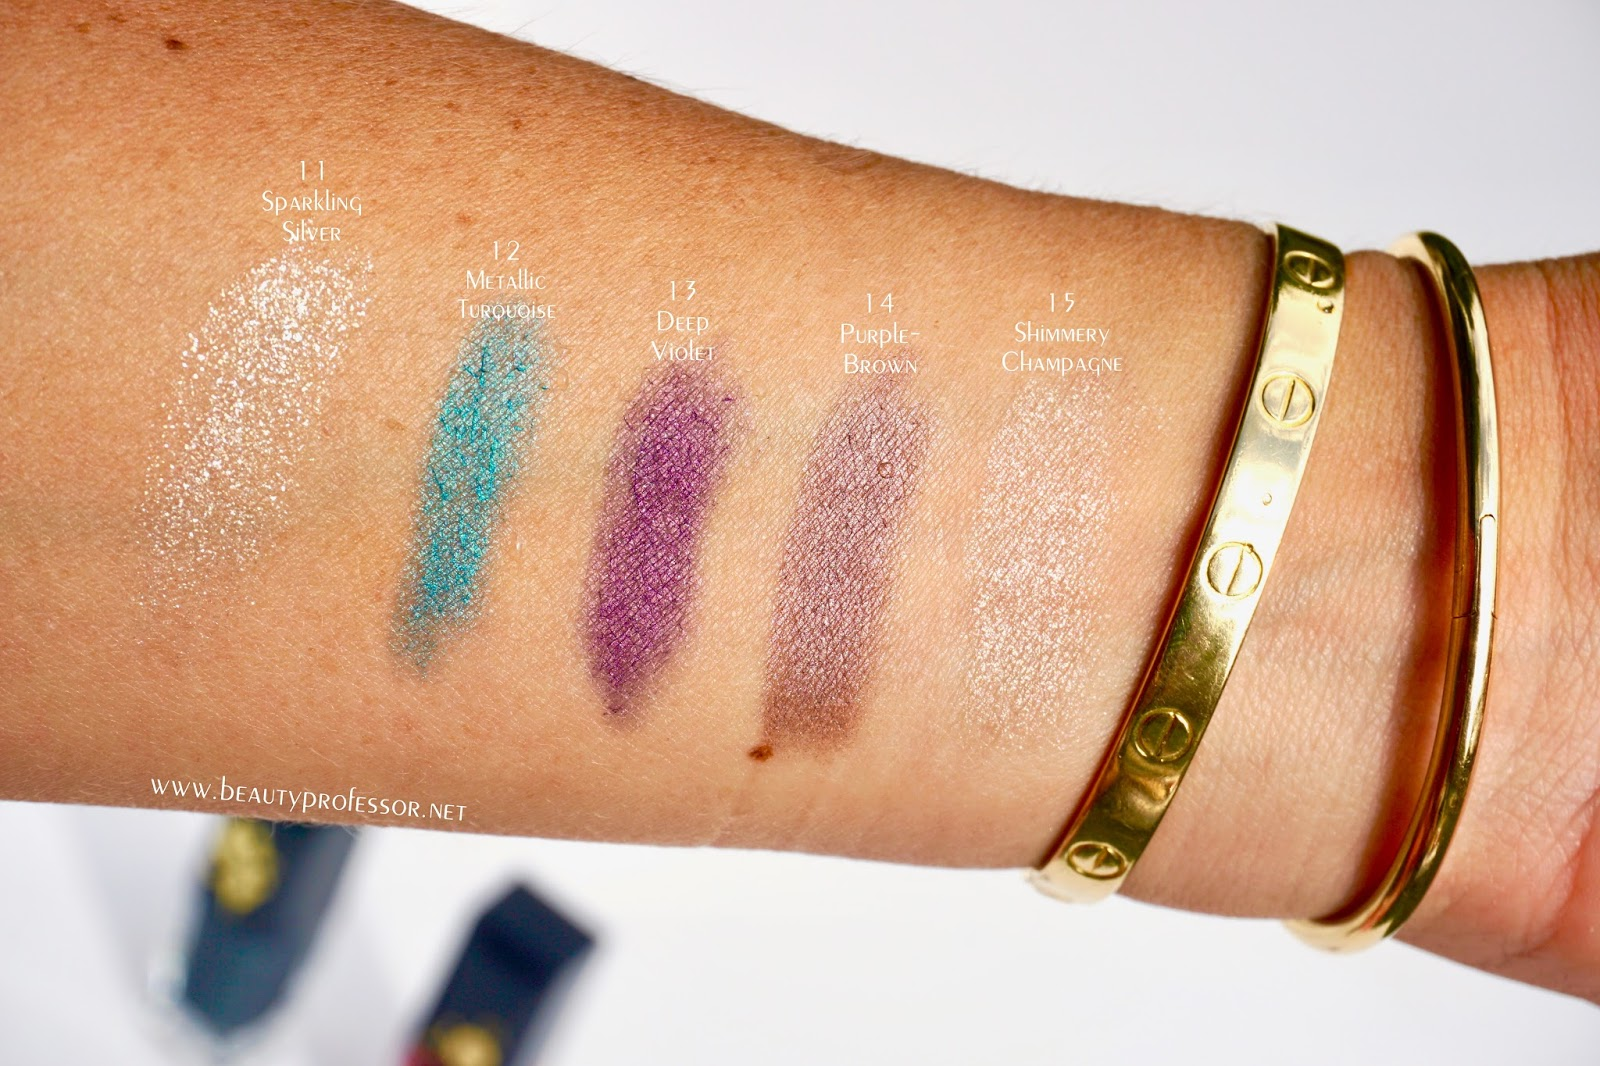 Beauty Professor First Look Limited Edition Gems From The Cl De